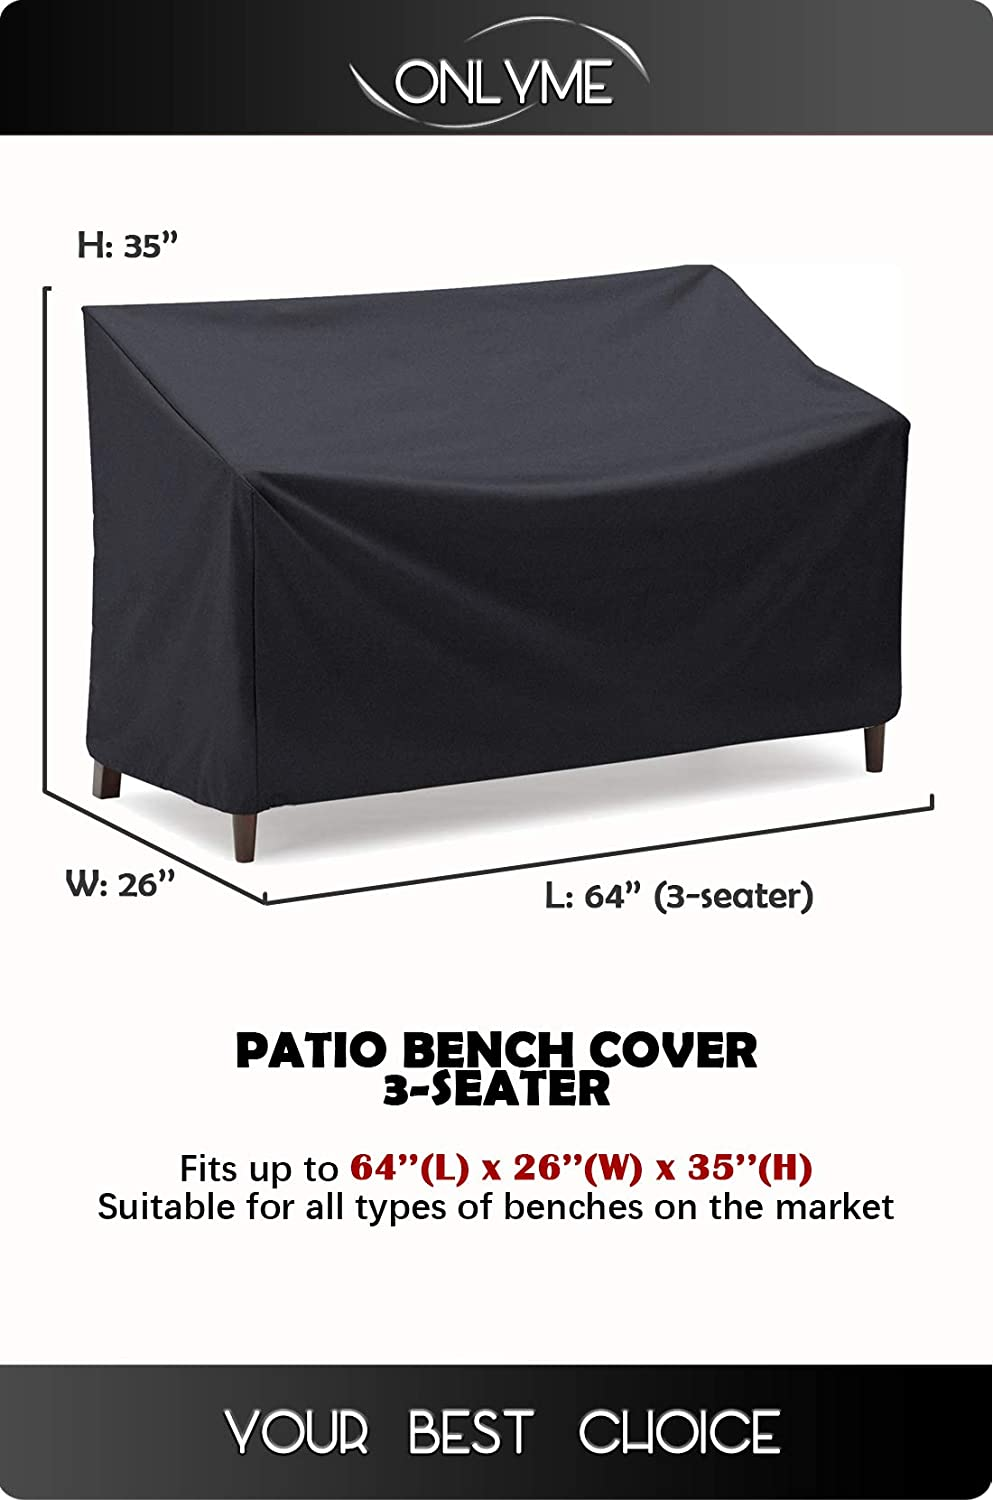 Onlyme Patio Chair Loveseat Bench Cover Durable and Waterproof Outdoor Furniture Sofa Covers